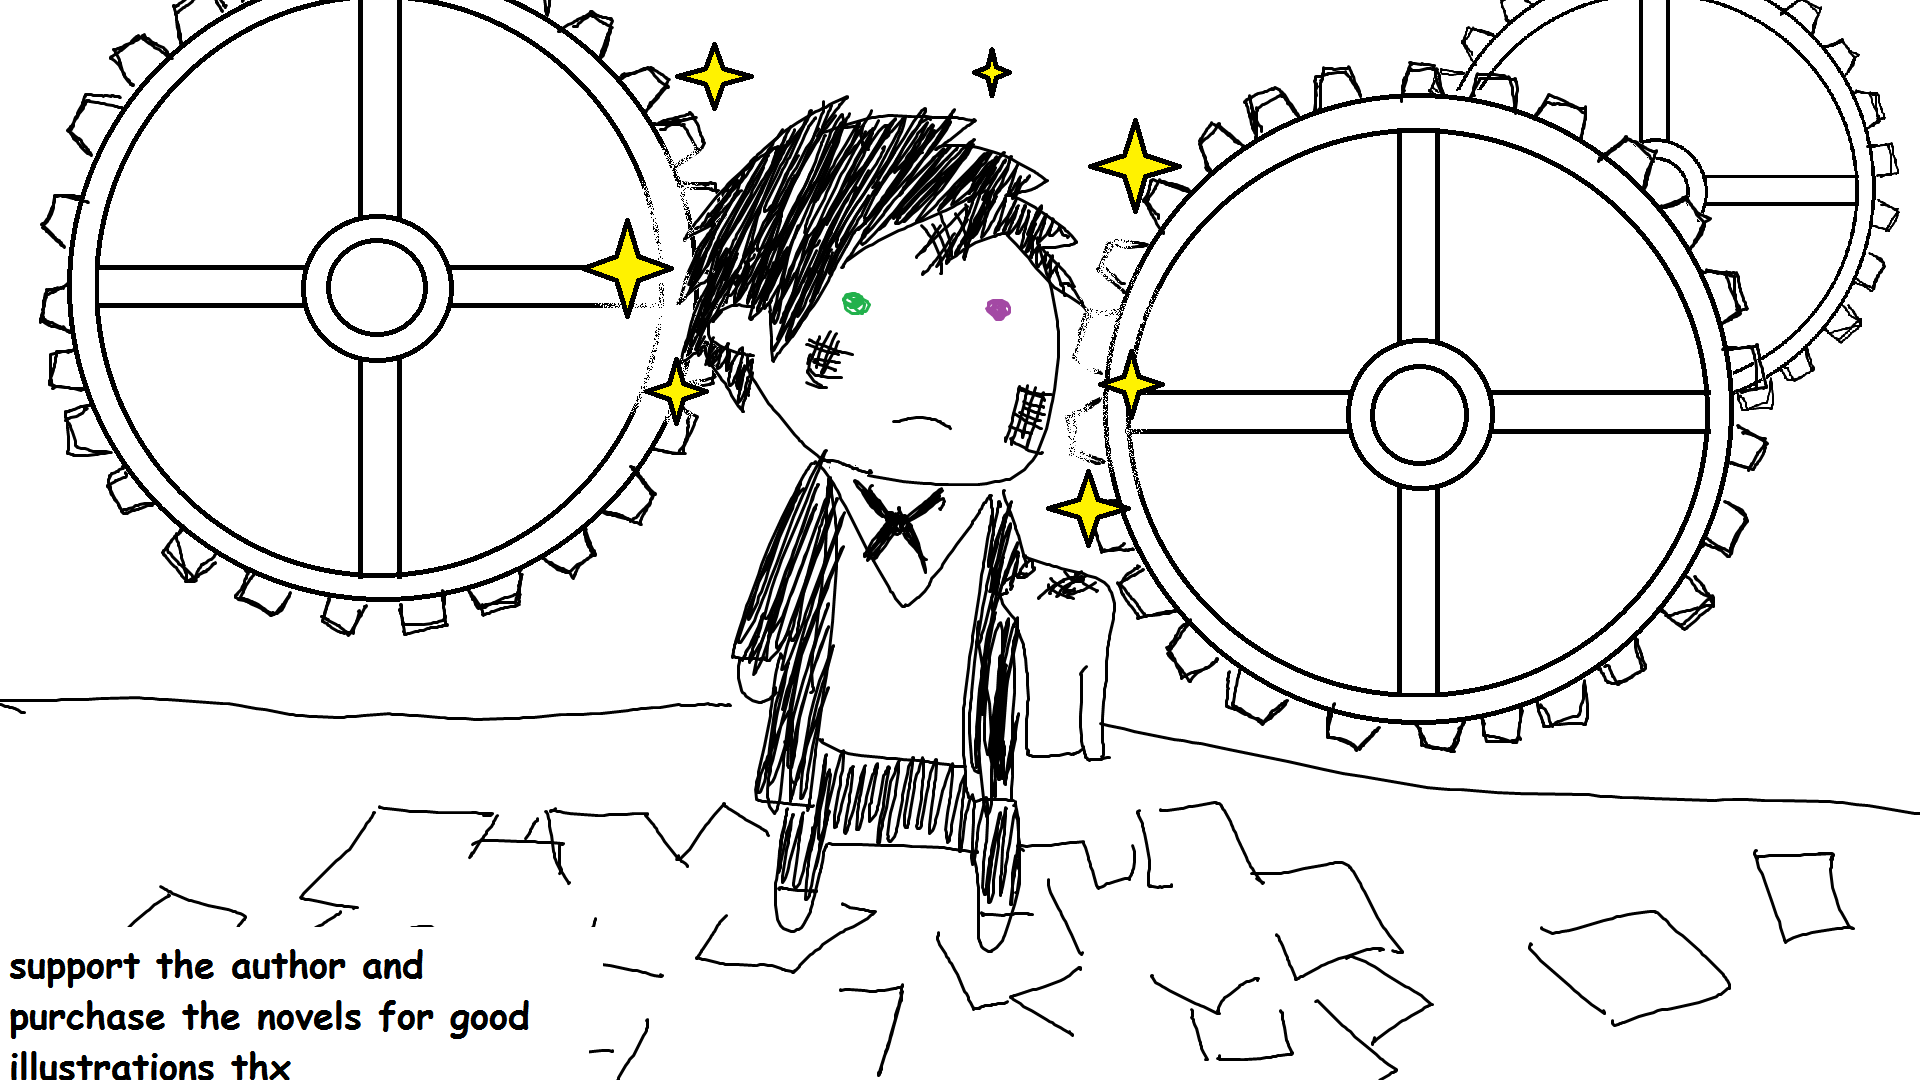 [Black and short hair boi wearing uniform with a similar top to leticiel but pants instead is standing and looking straight forward. His cheeks are dirty. Hes holding a towel in his left hand. Behind him is that generic ton of clock gears thing you see in a lot of chinese cartoon the bottom left and top right portions are just pitch black though and there're a bunch of papers on the ground]